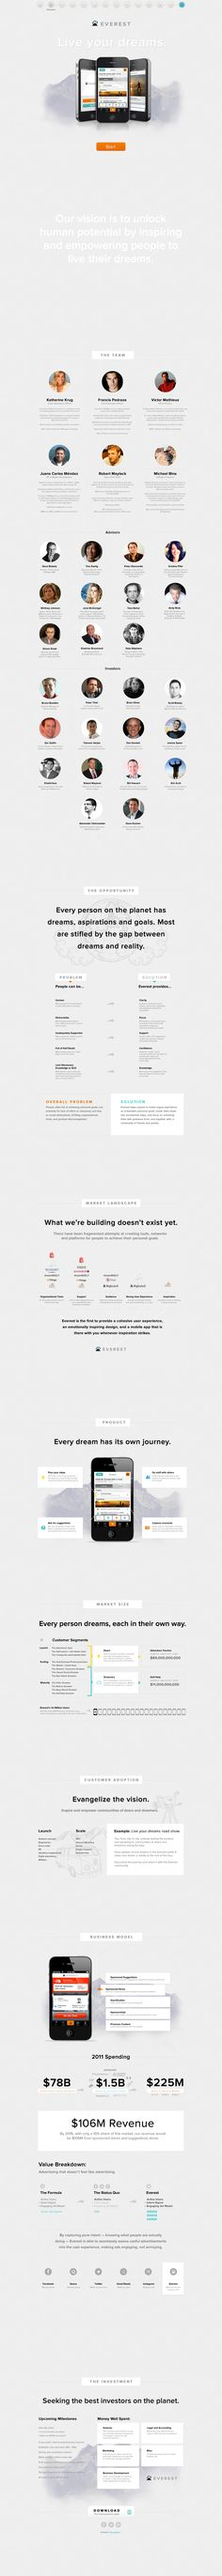 16 Best Pitch Decks images in 2013 | Info graphics, Infographic